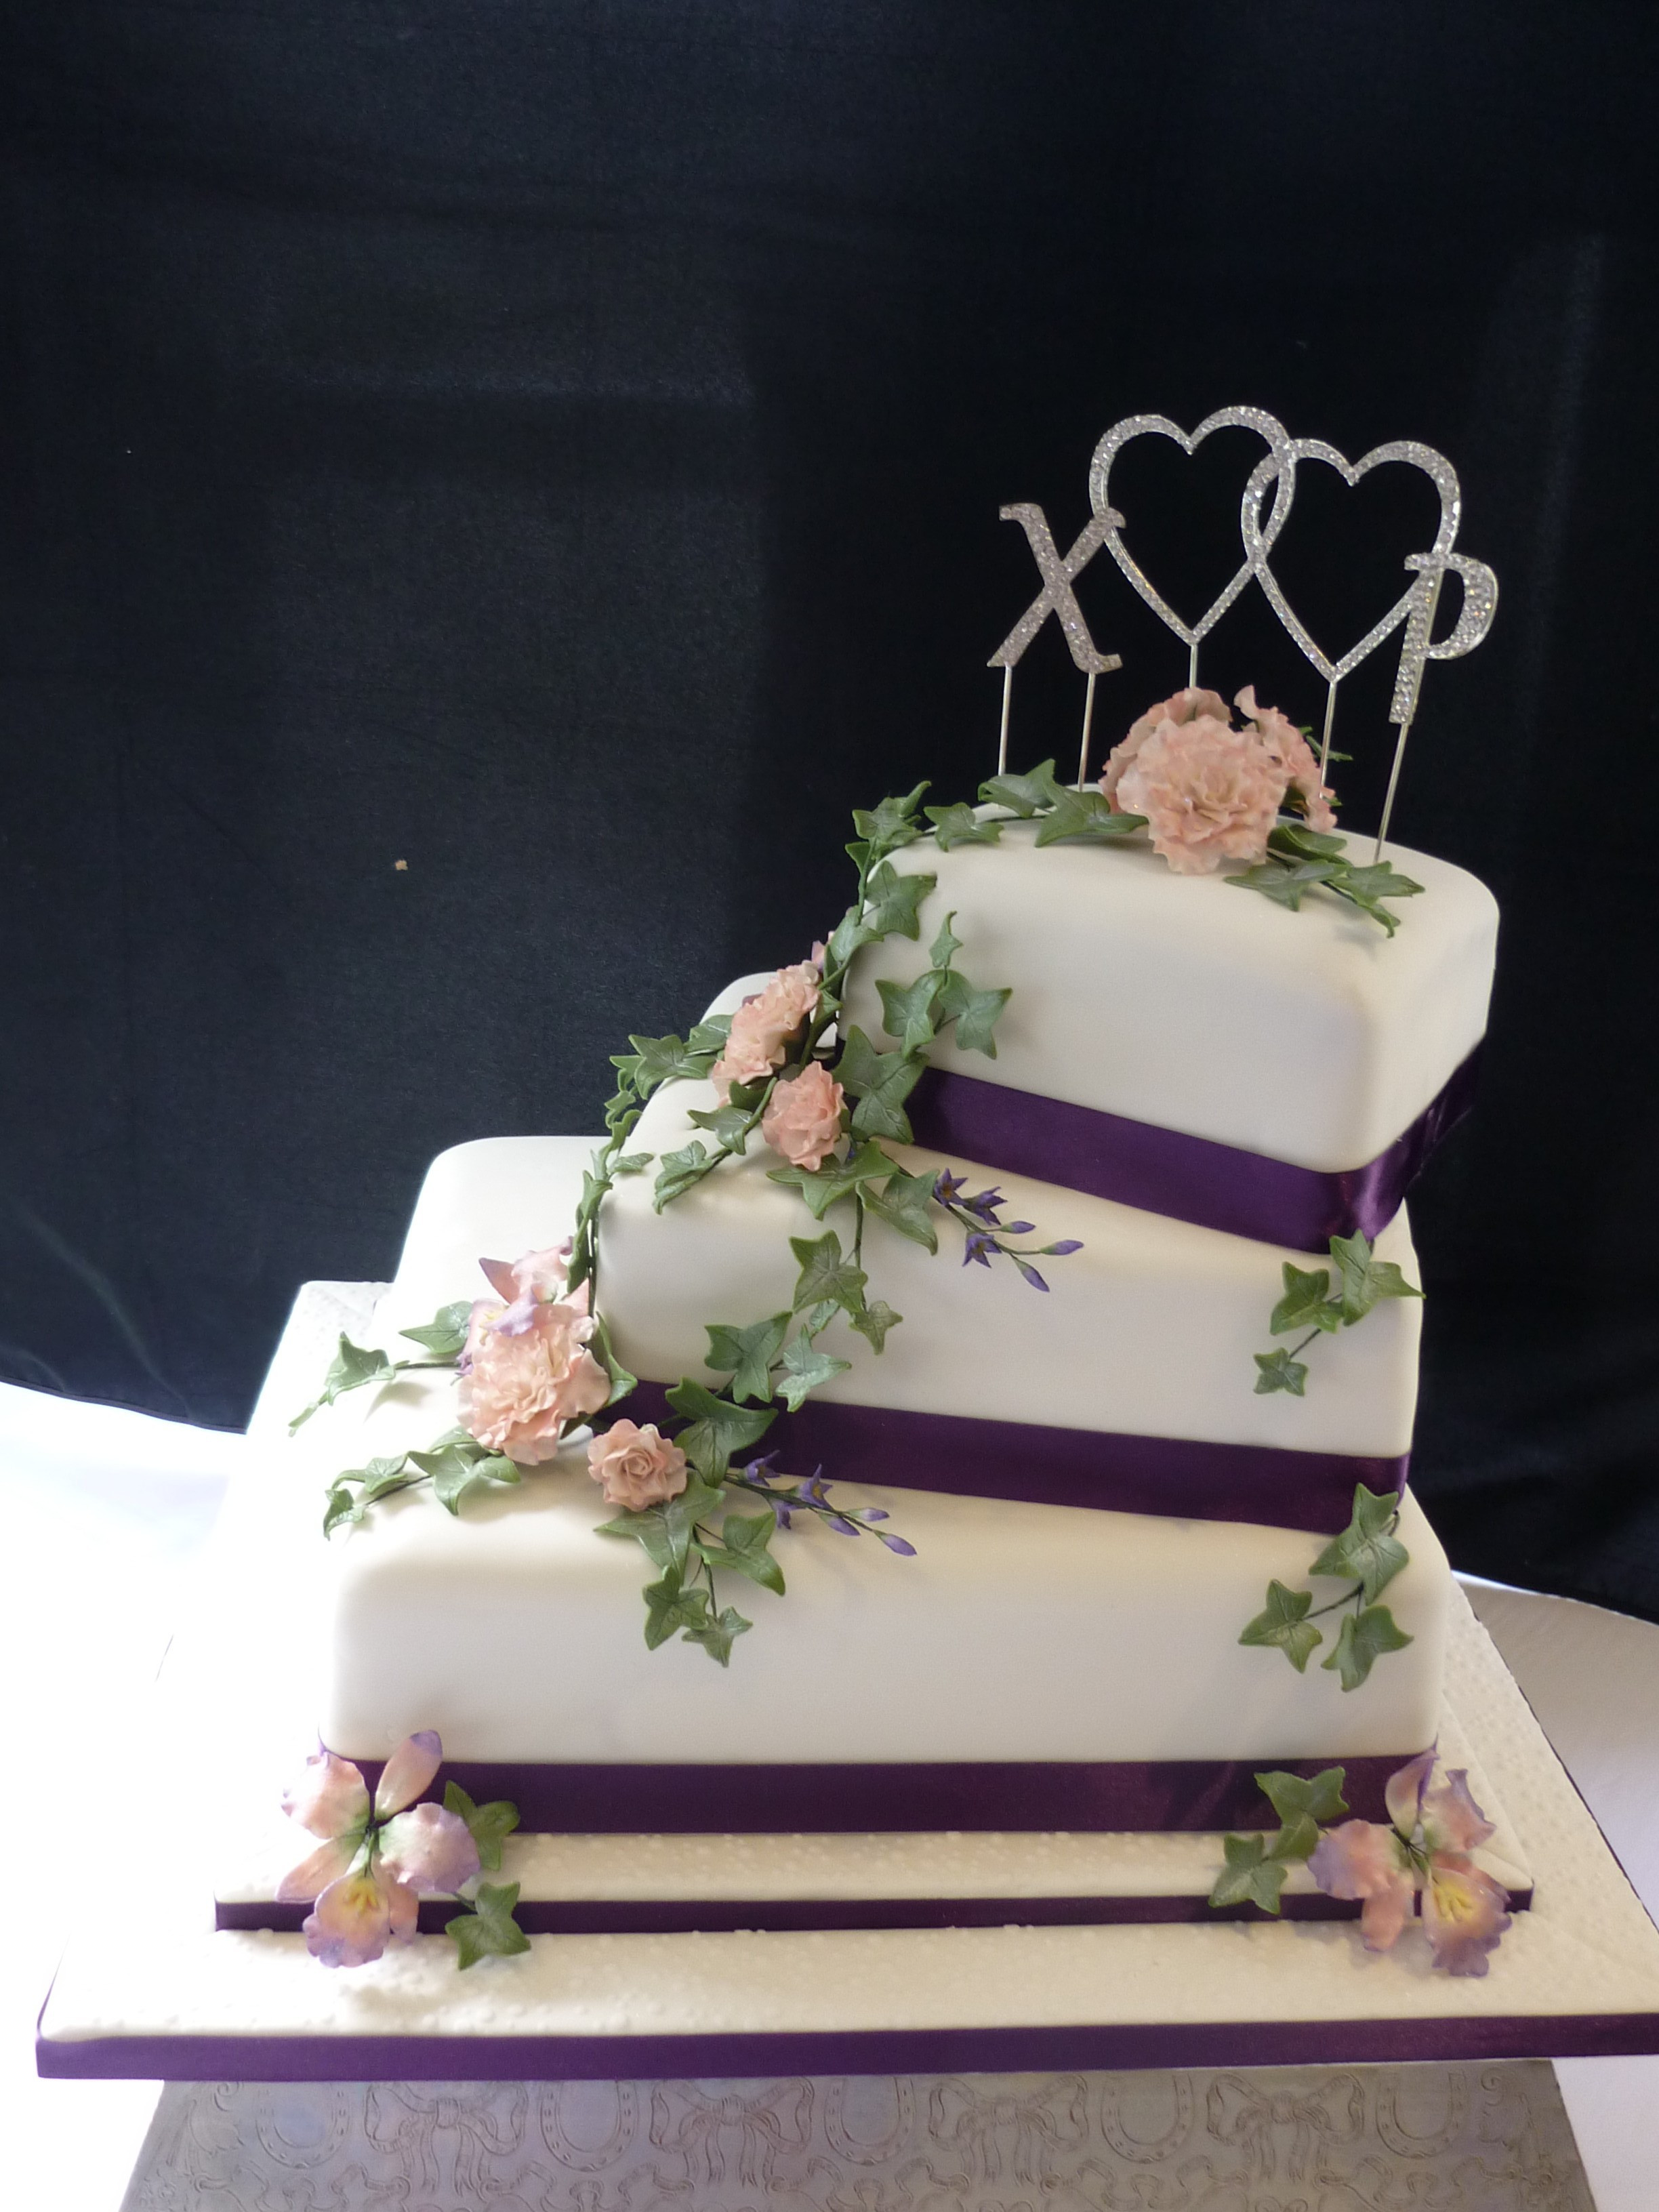 3 Tier Square Wedding Cakes  3 tier square orchid and rose wedding cake